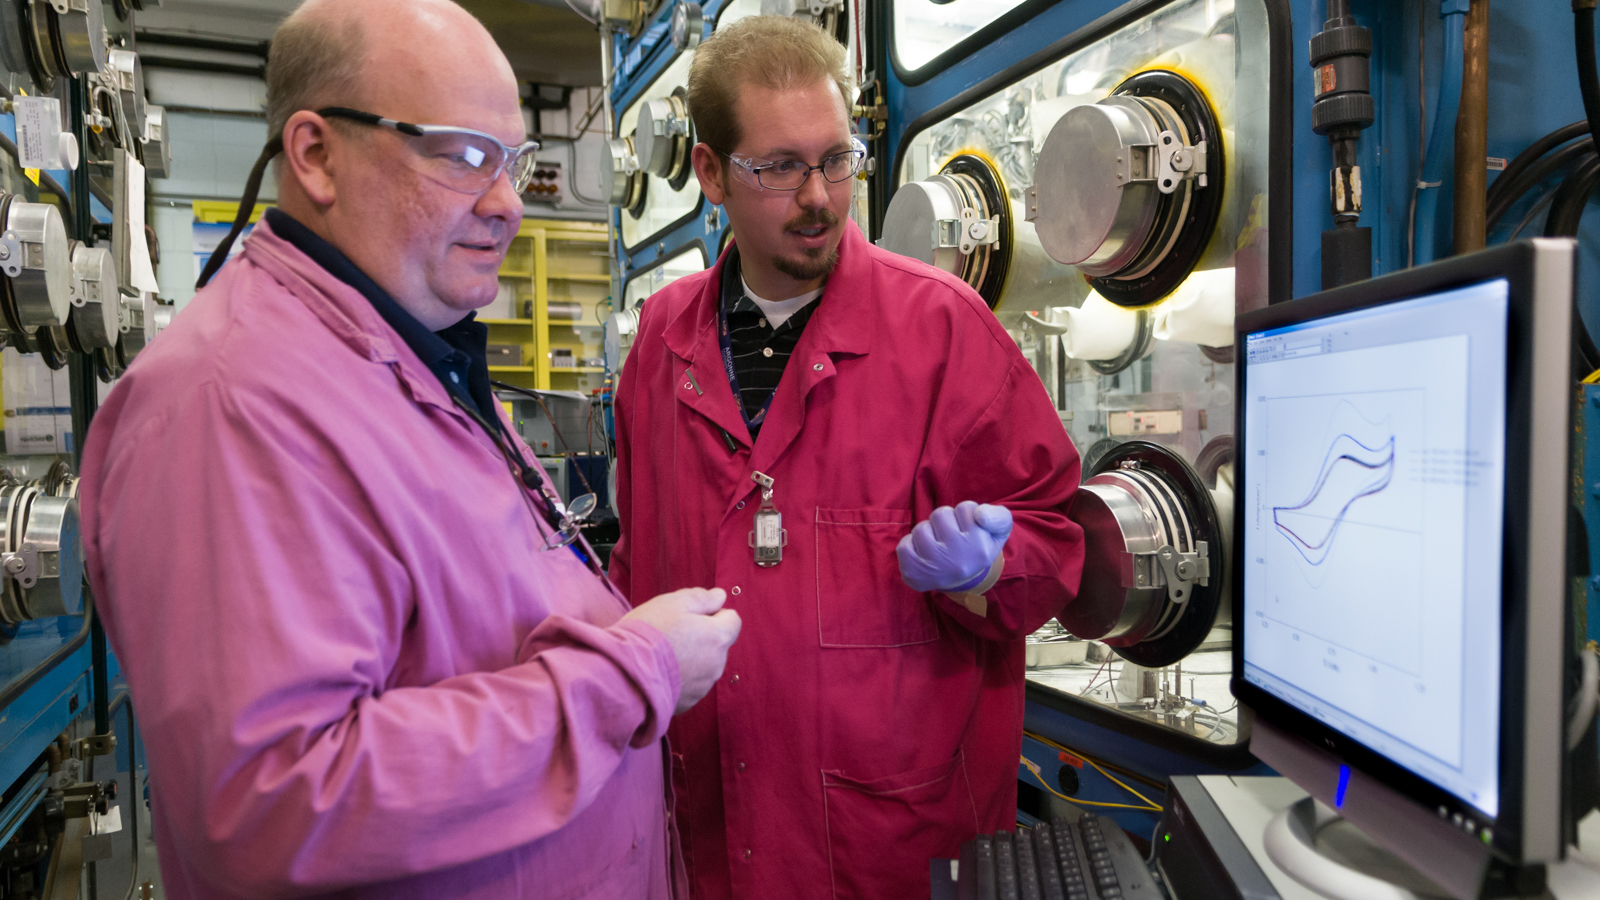 Argonne researchers Jim Willit (left) and Nick Smith review data from in-situ process monitoring for pyrochemical systems.